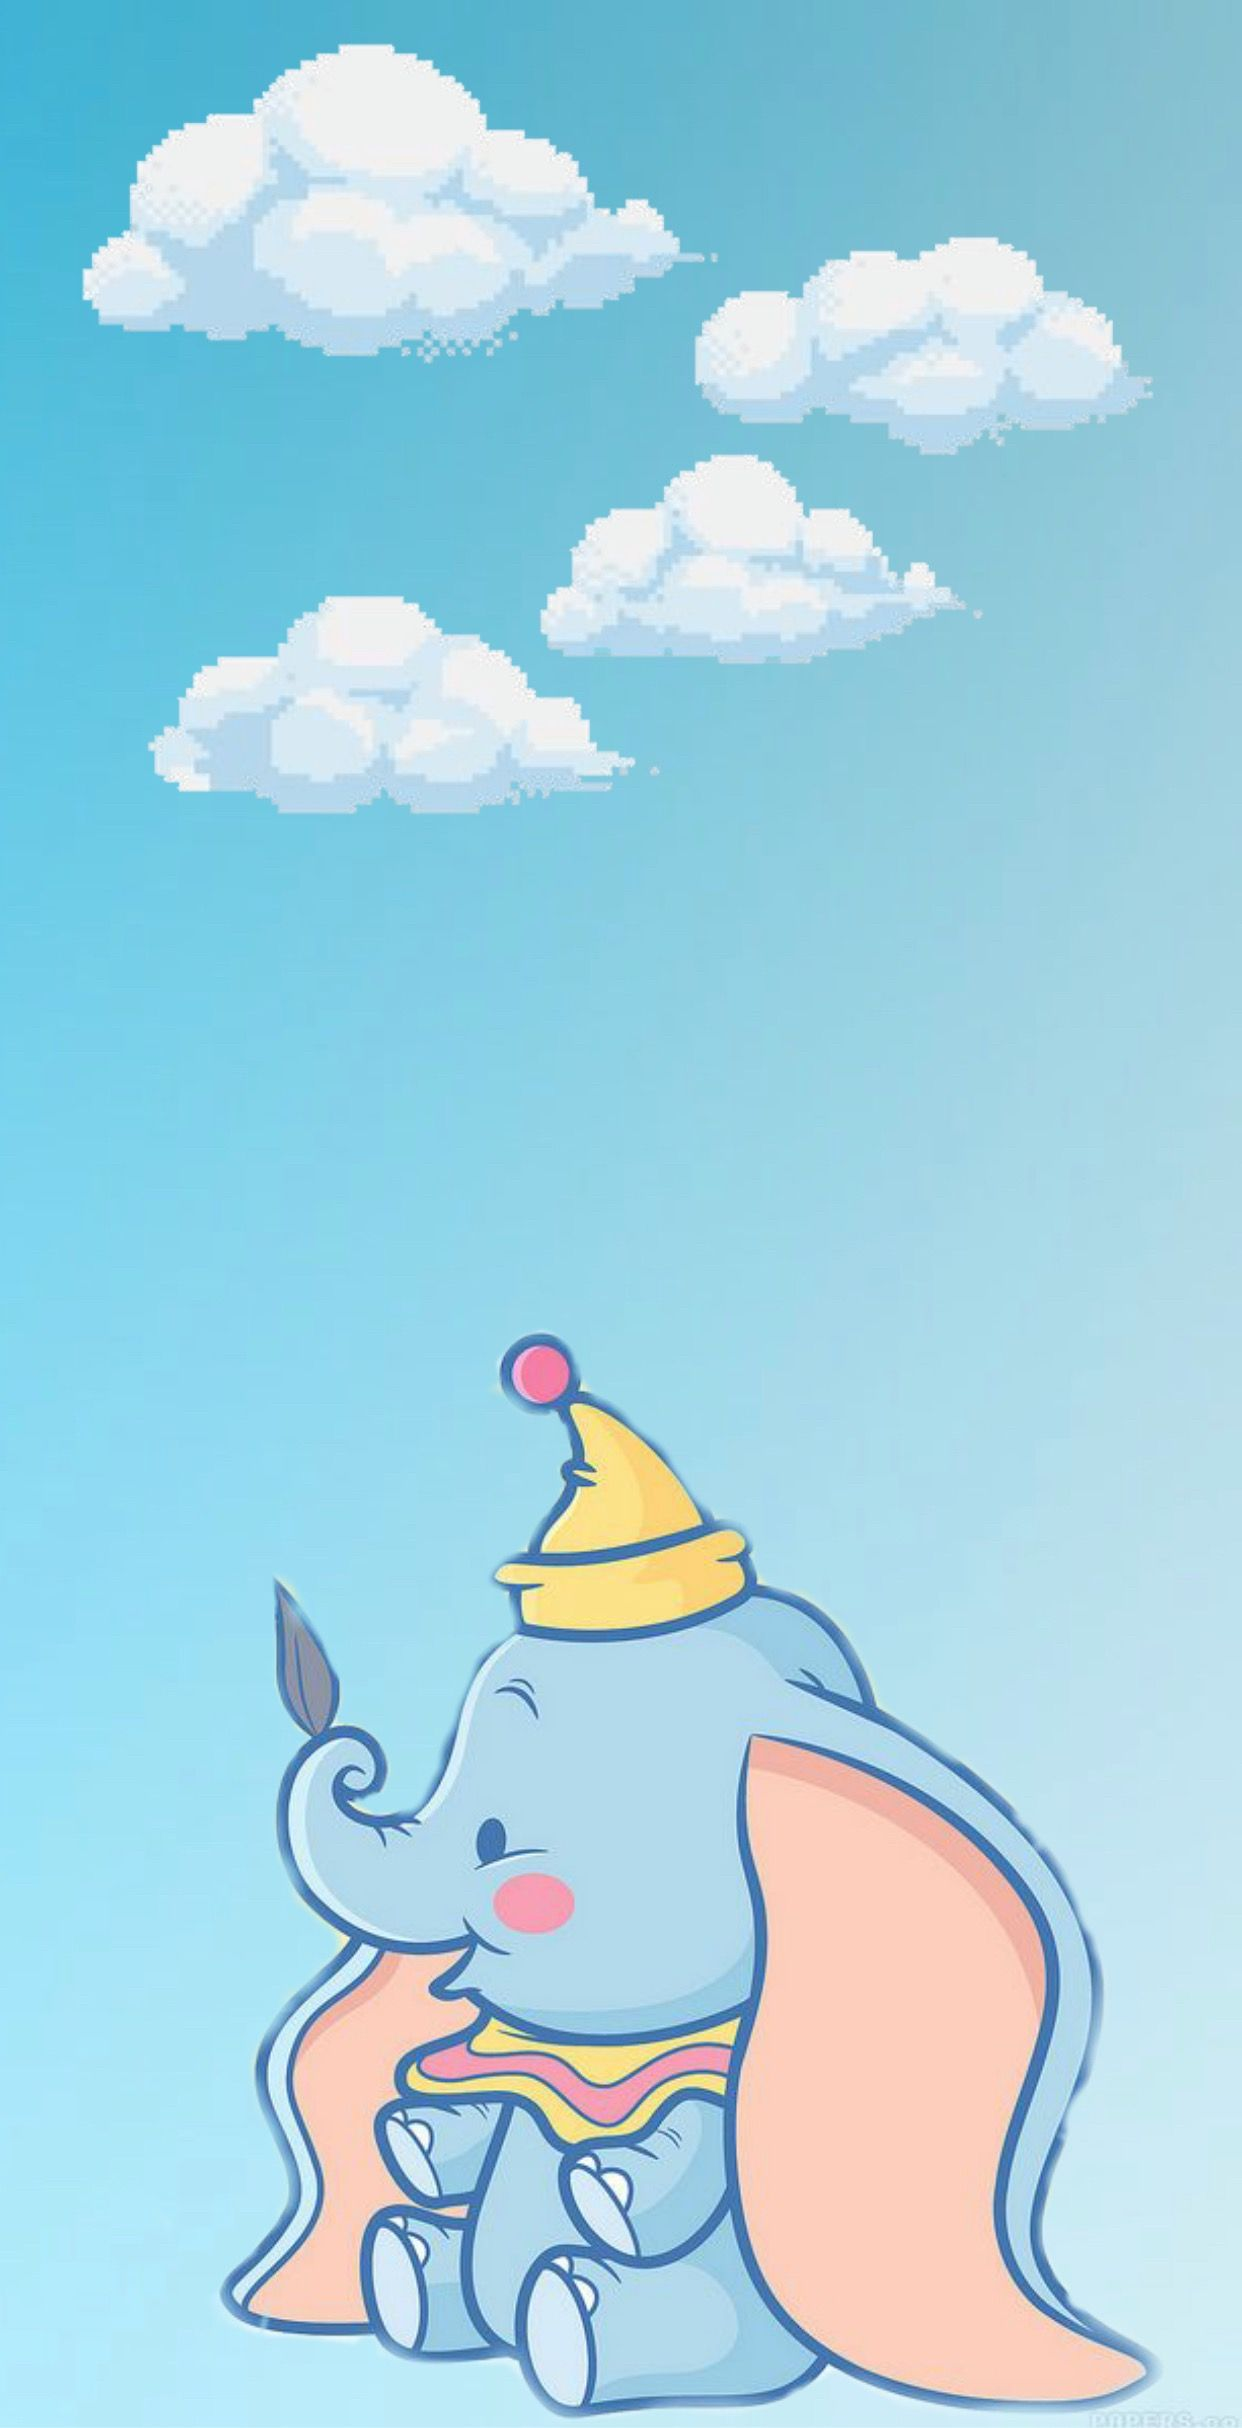 Baby dumbo wallpaper Disney wallpaper, Cute cartoon